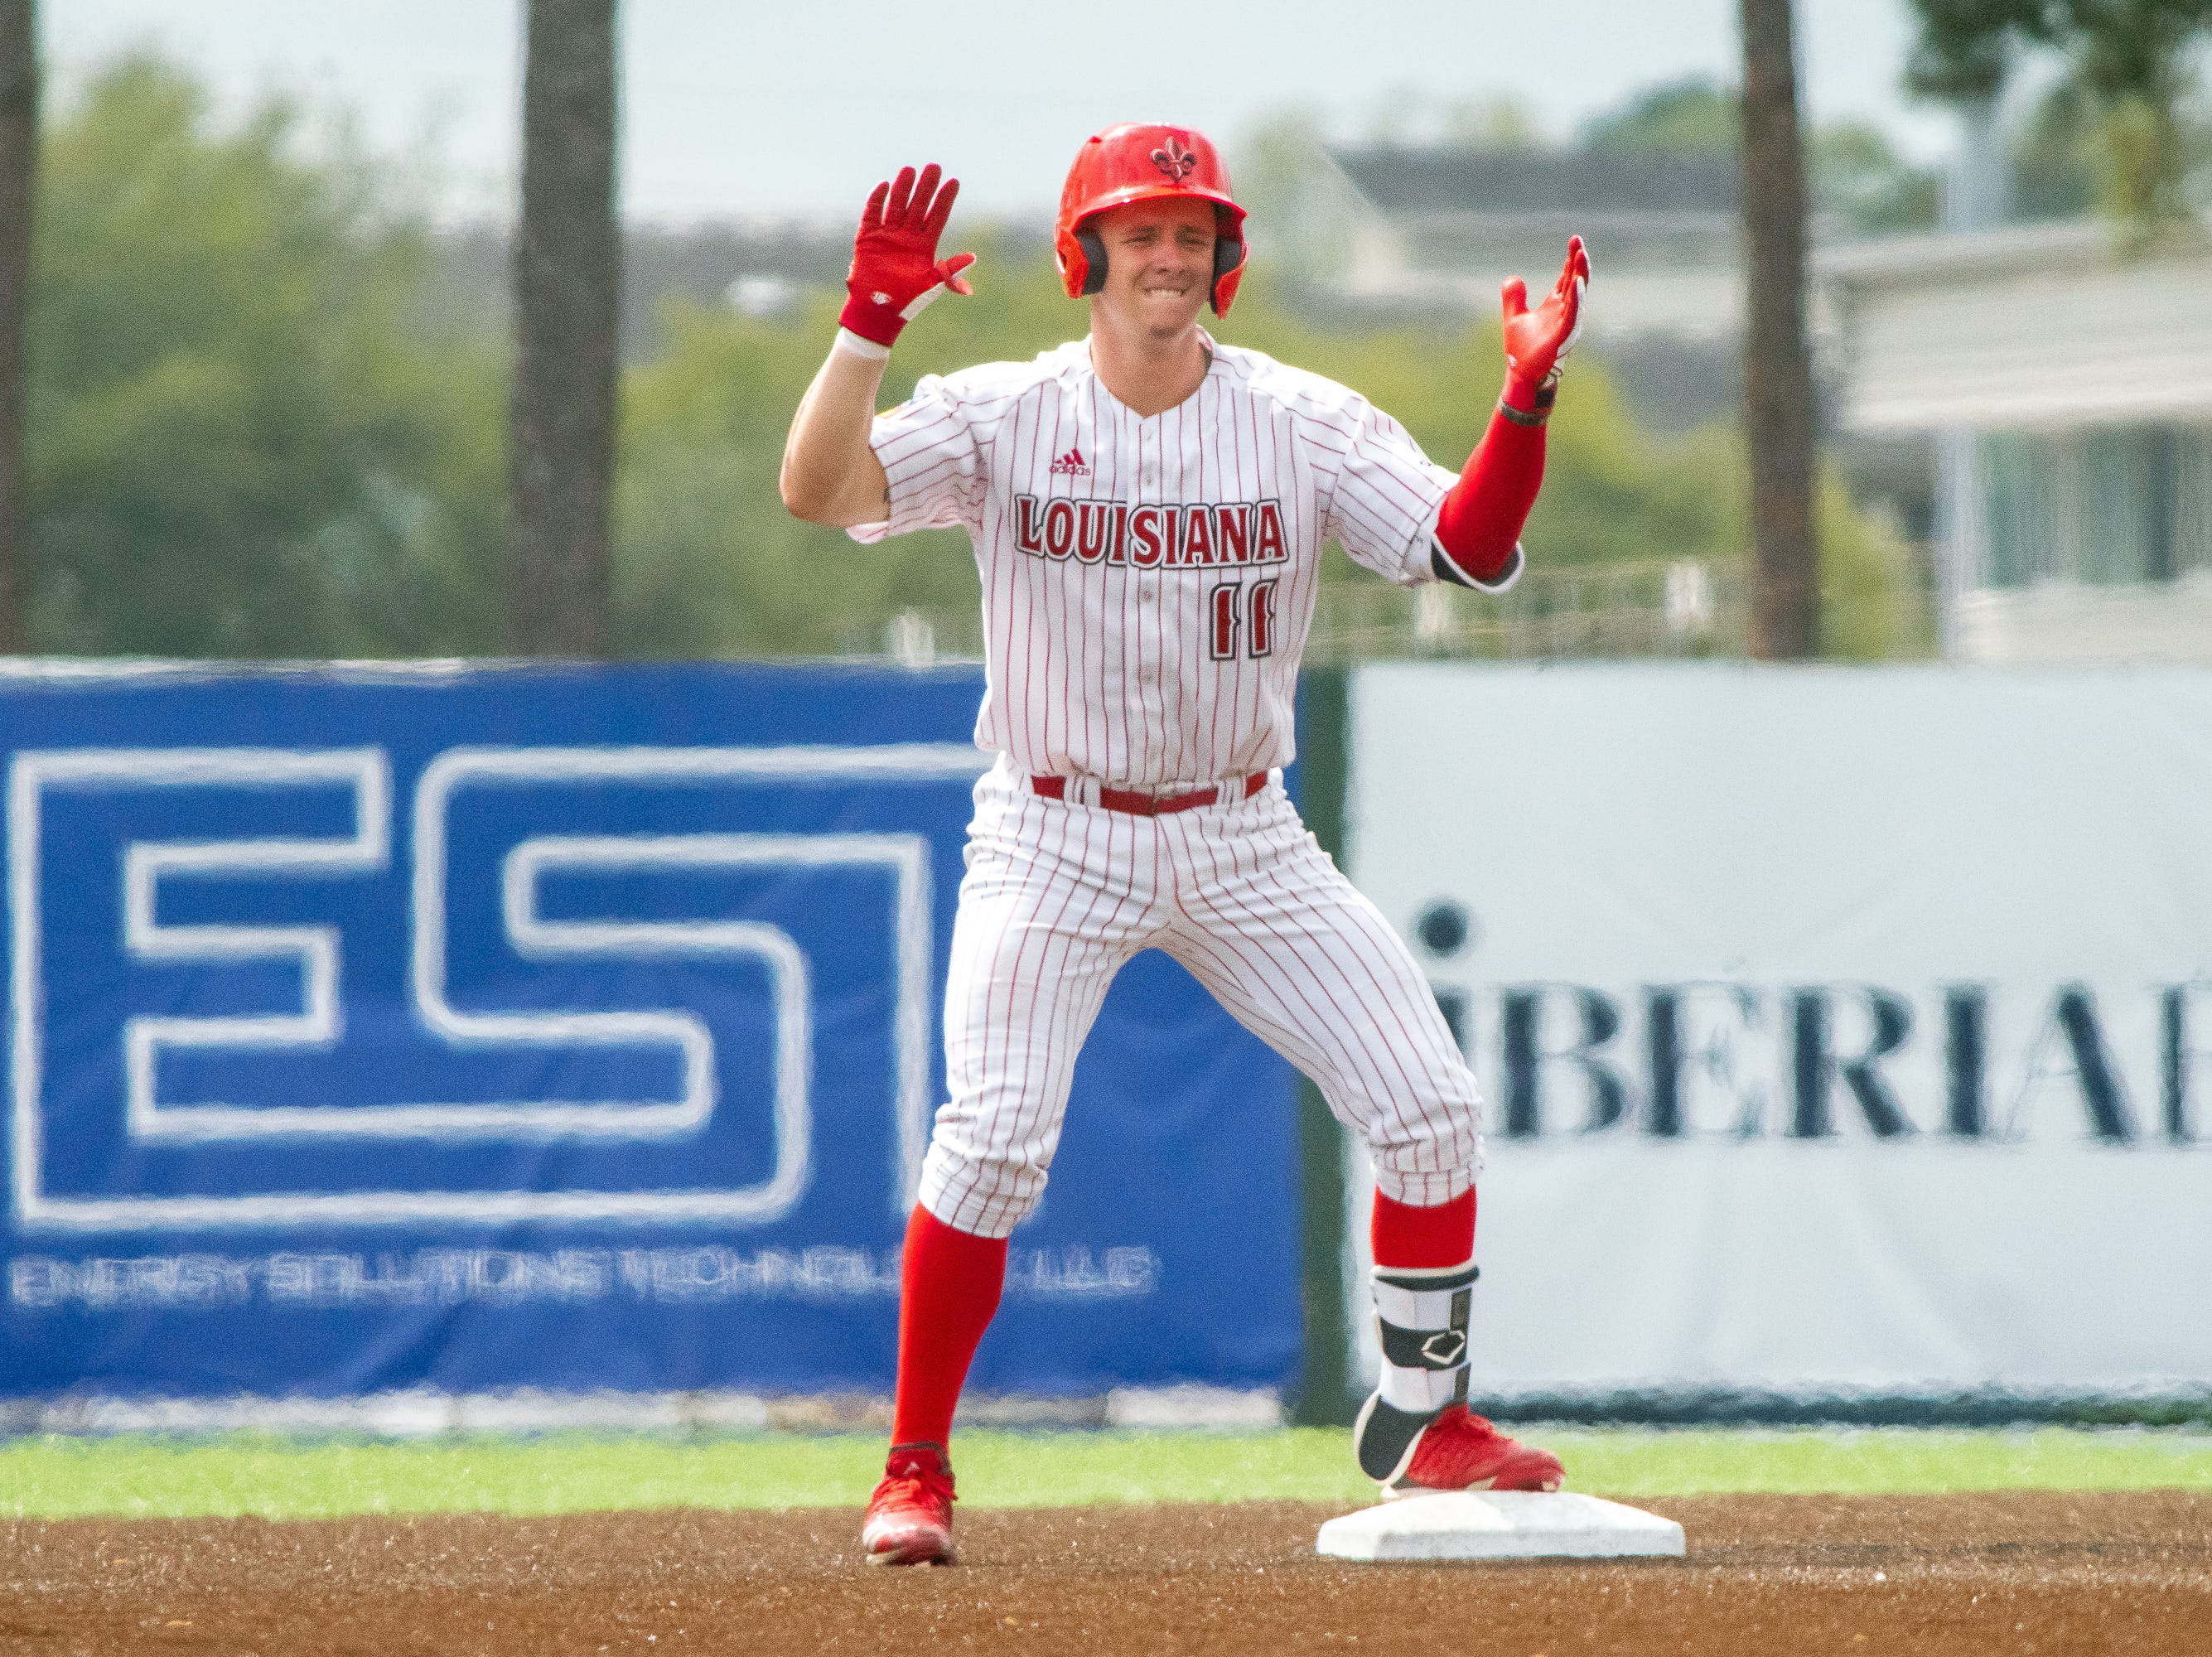 UL's Kole McKinnon celebrates on second base after his successful at-bat as the Ragin' Cajuns take on the Loyola Marymount Lions at M.L. Tigue Moore Field on March 10, 2019.